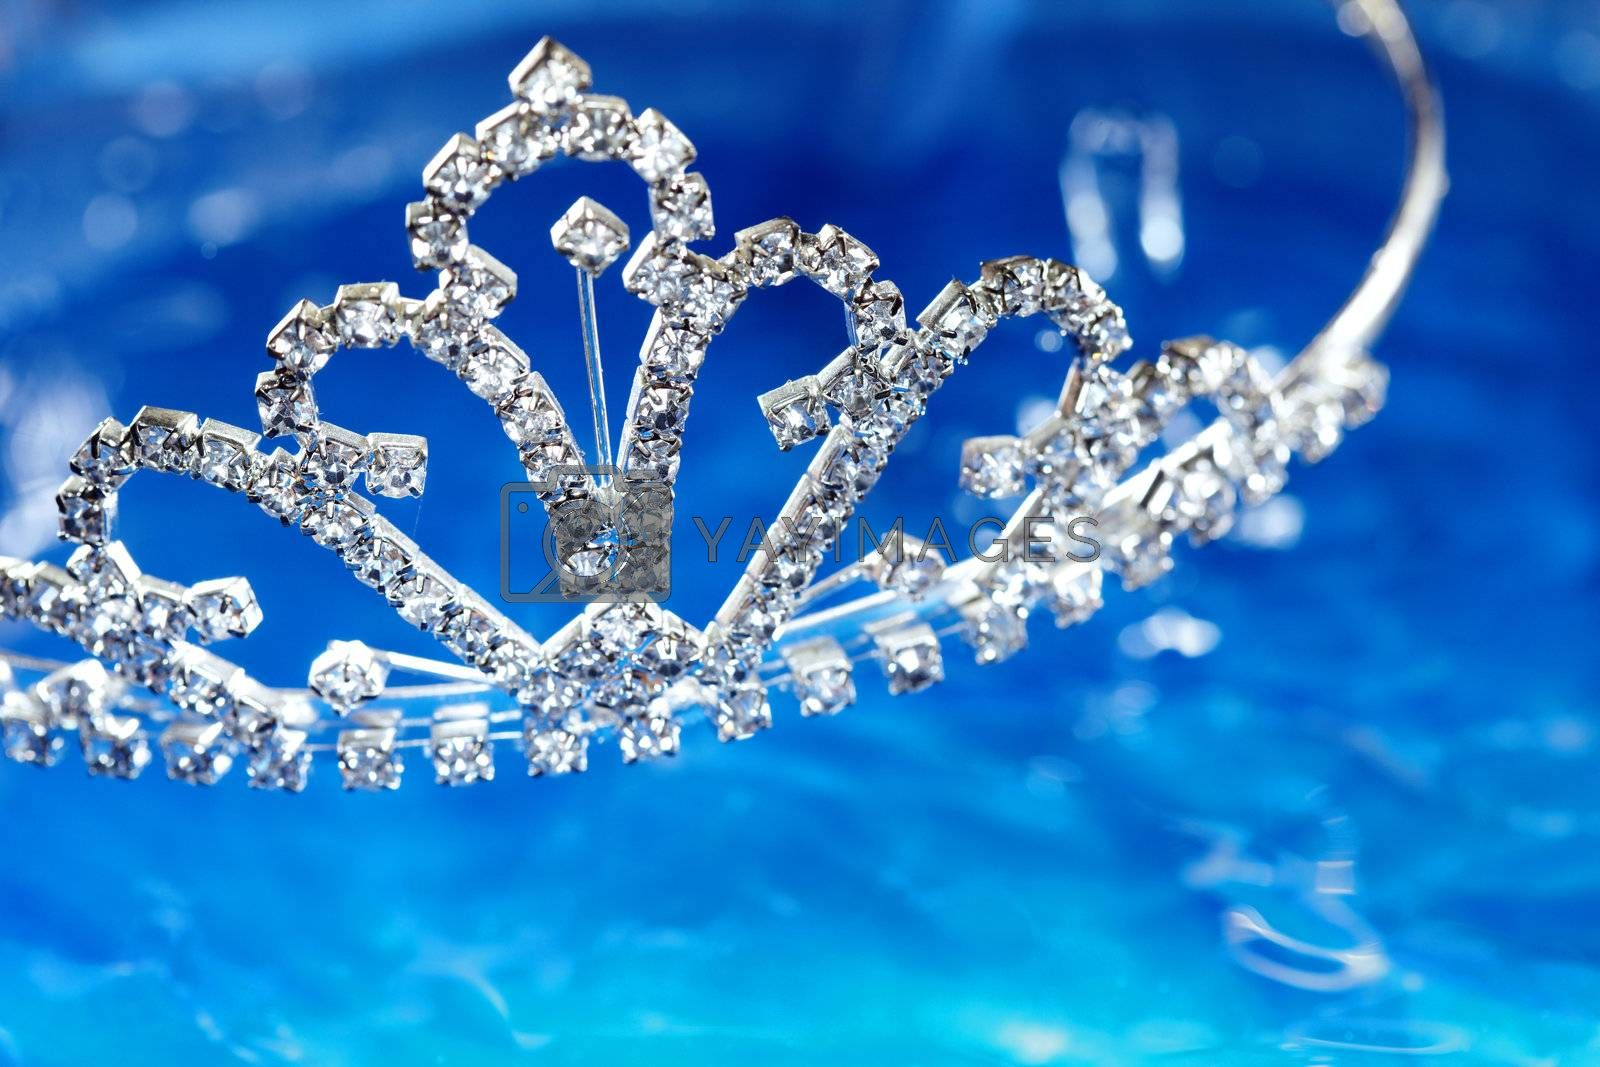 Close-up photo of the silver diadem with diamonds on a blue water background. Shallow depth of field added by macro lens for natural view